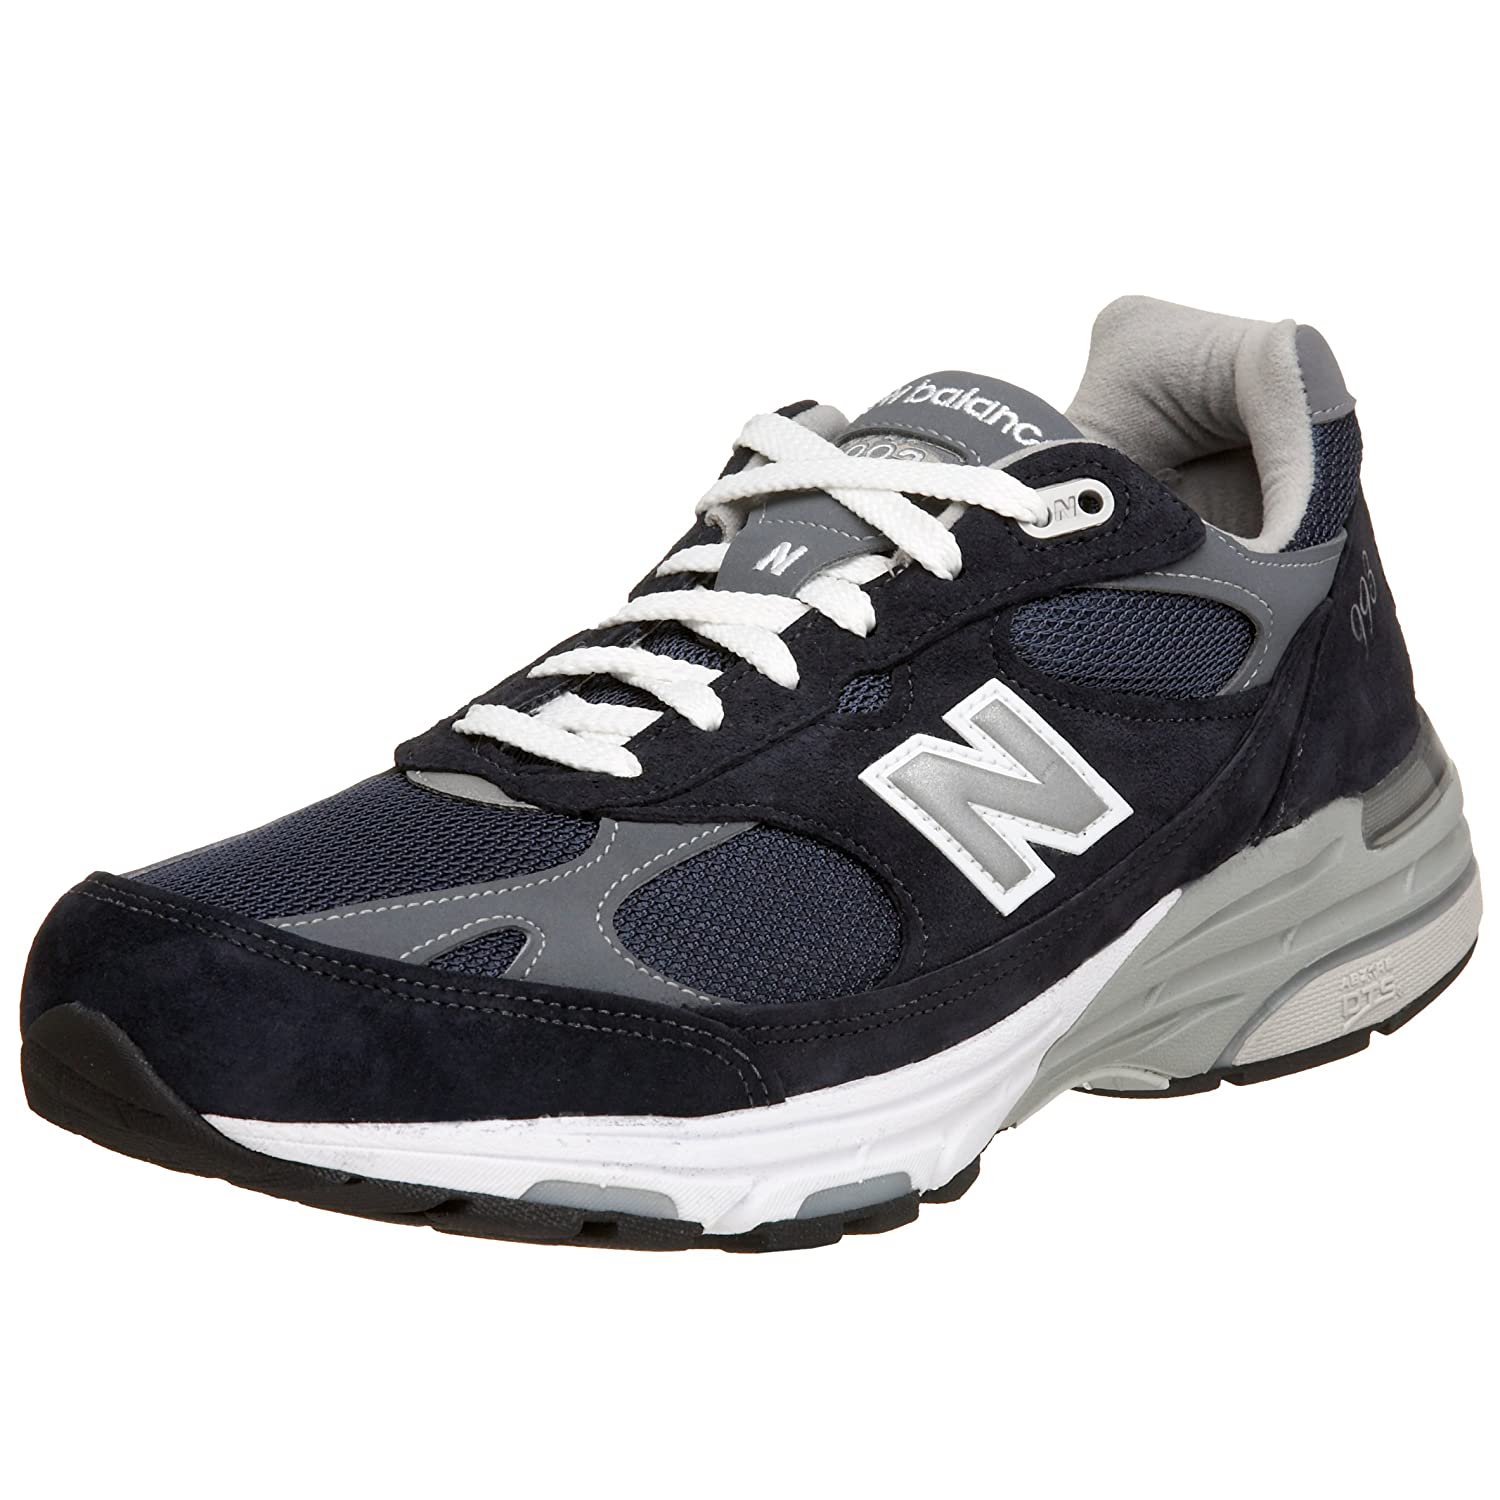 New Balance Shoes Womens Philippines